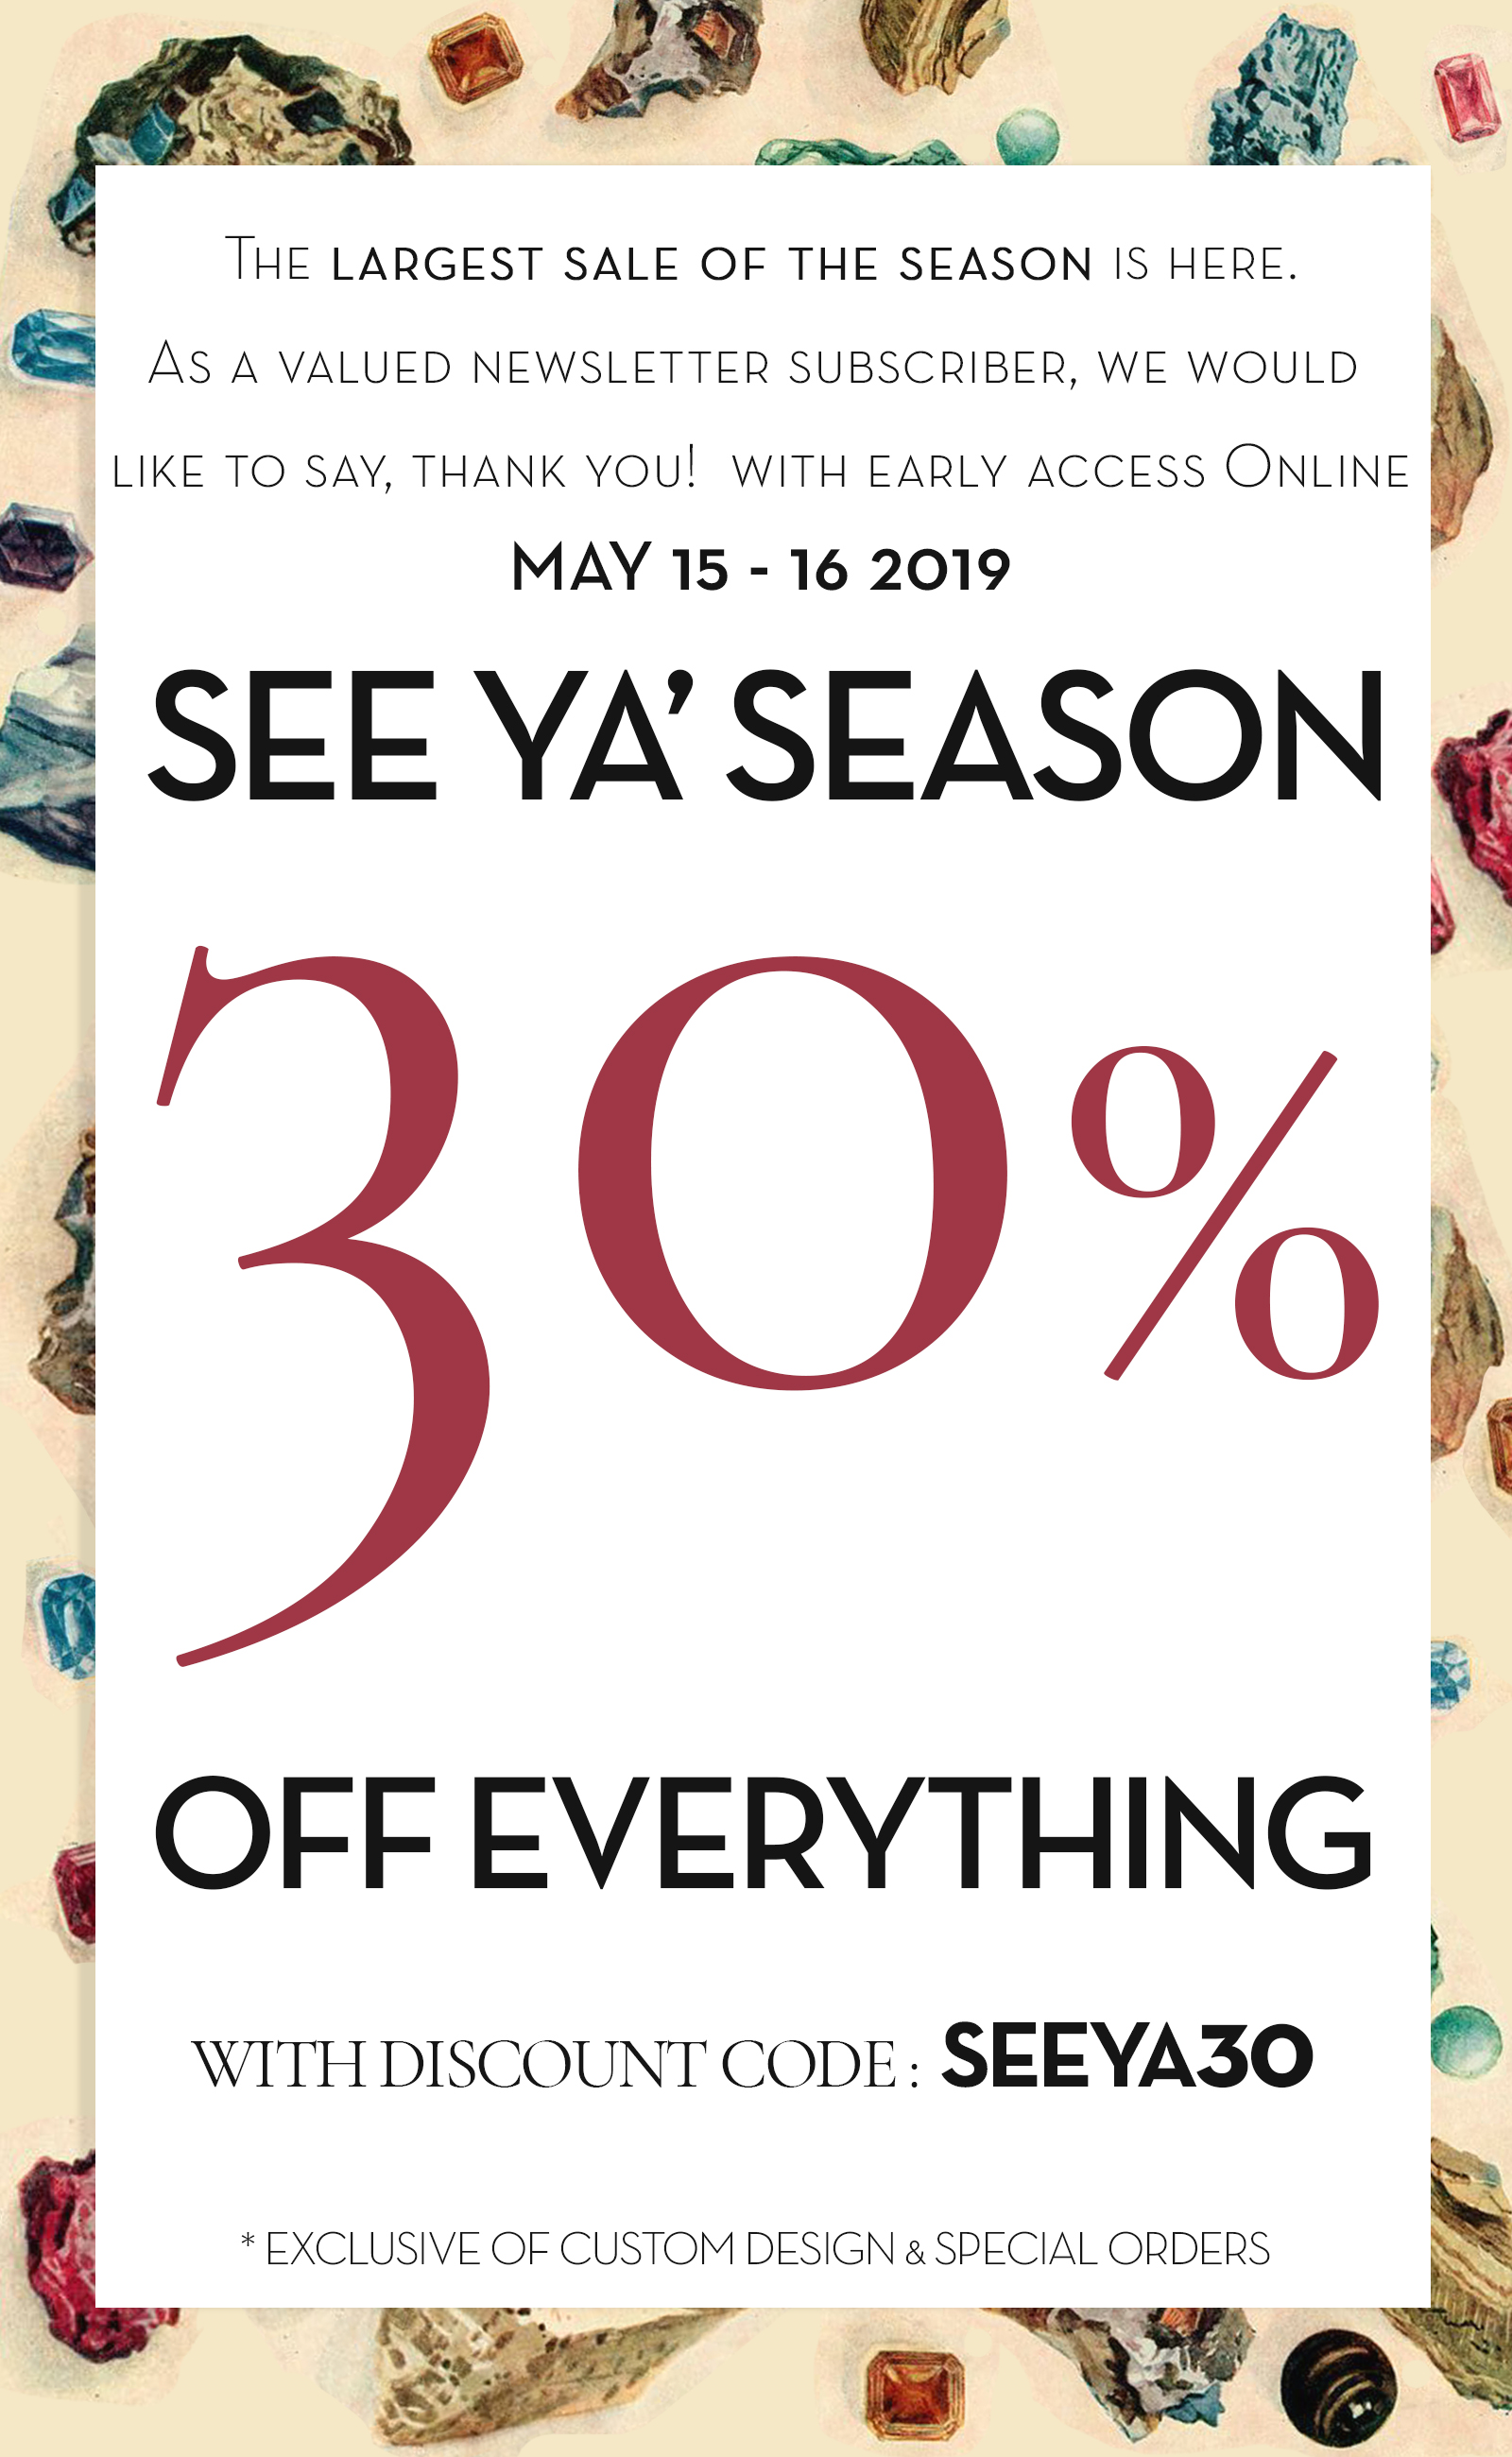 """30% OFF everything online, (excluding custom design and special orders)  use discount code """"SEEYA30"""" in cart to see discount. One use per customer, valid May 15th 12:00 AM through, May 16th 11:59 2019."""